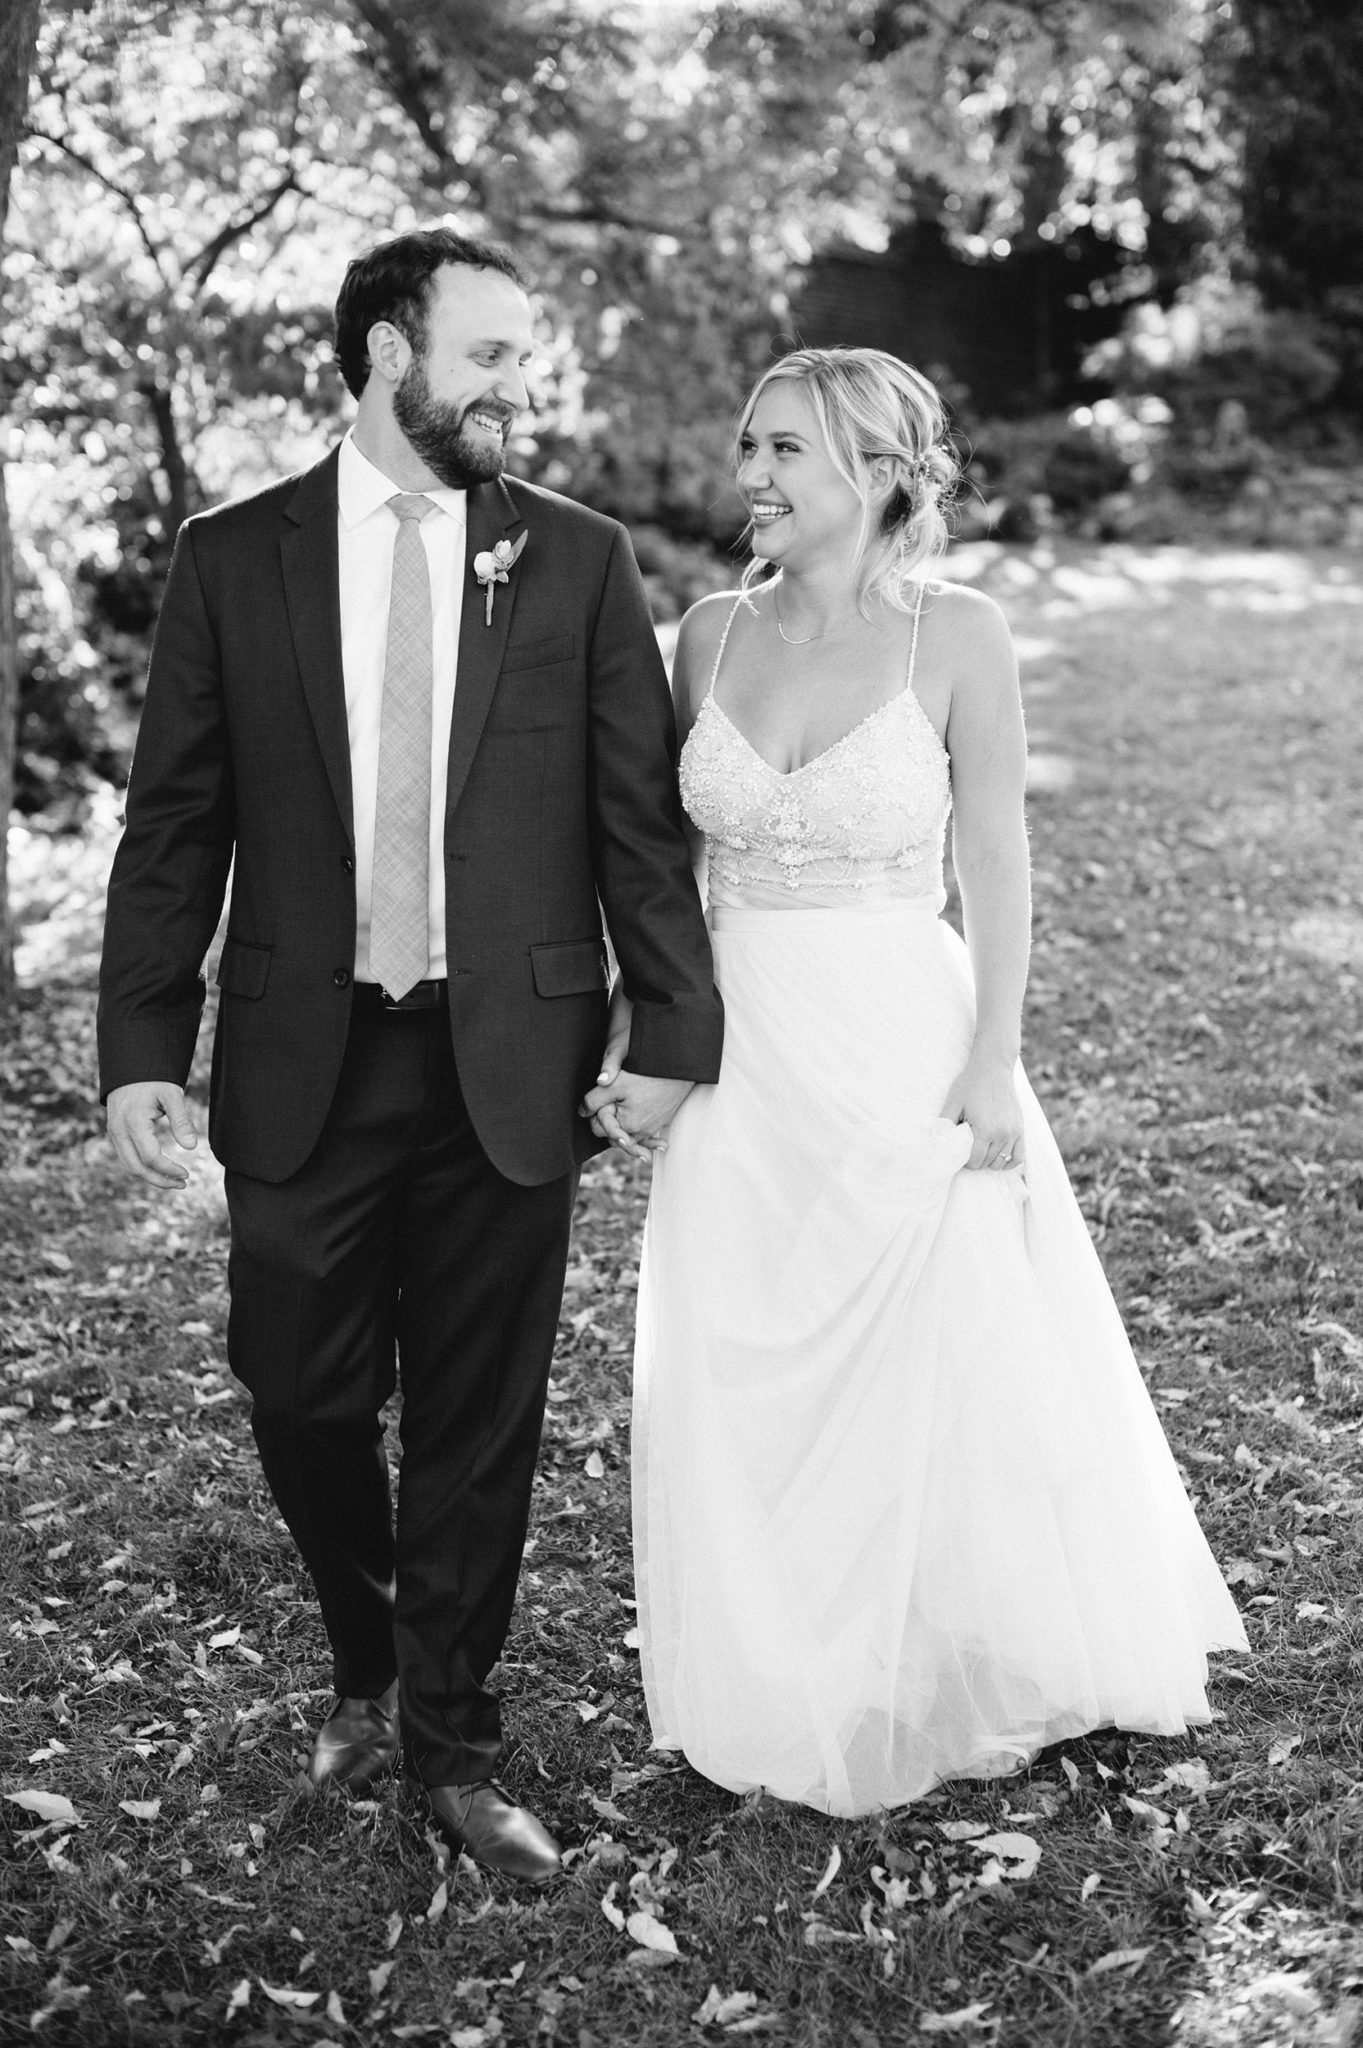 A black and white photo of a couple on their wedding day walking in Mellon Park